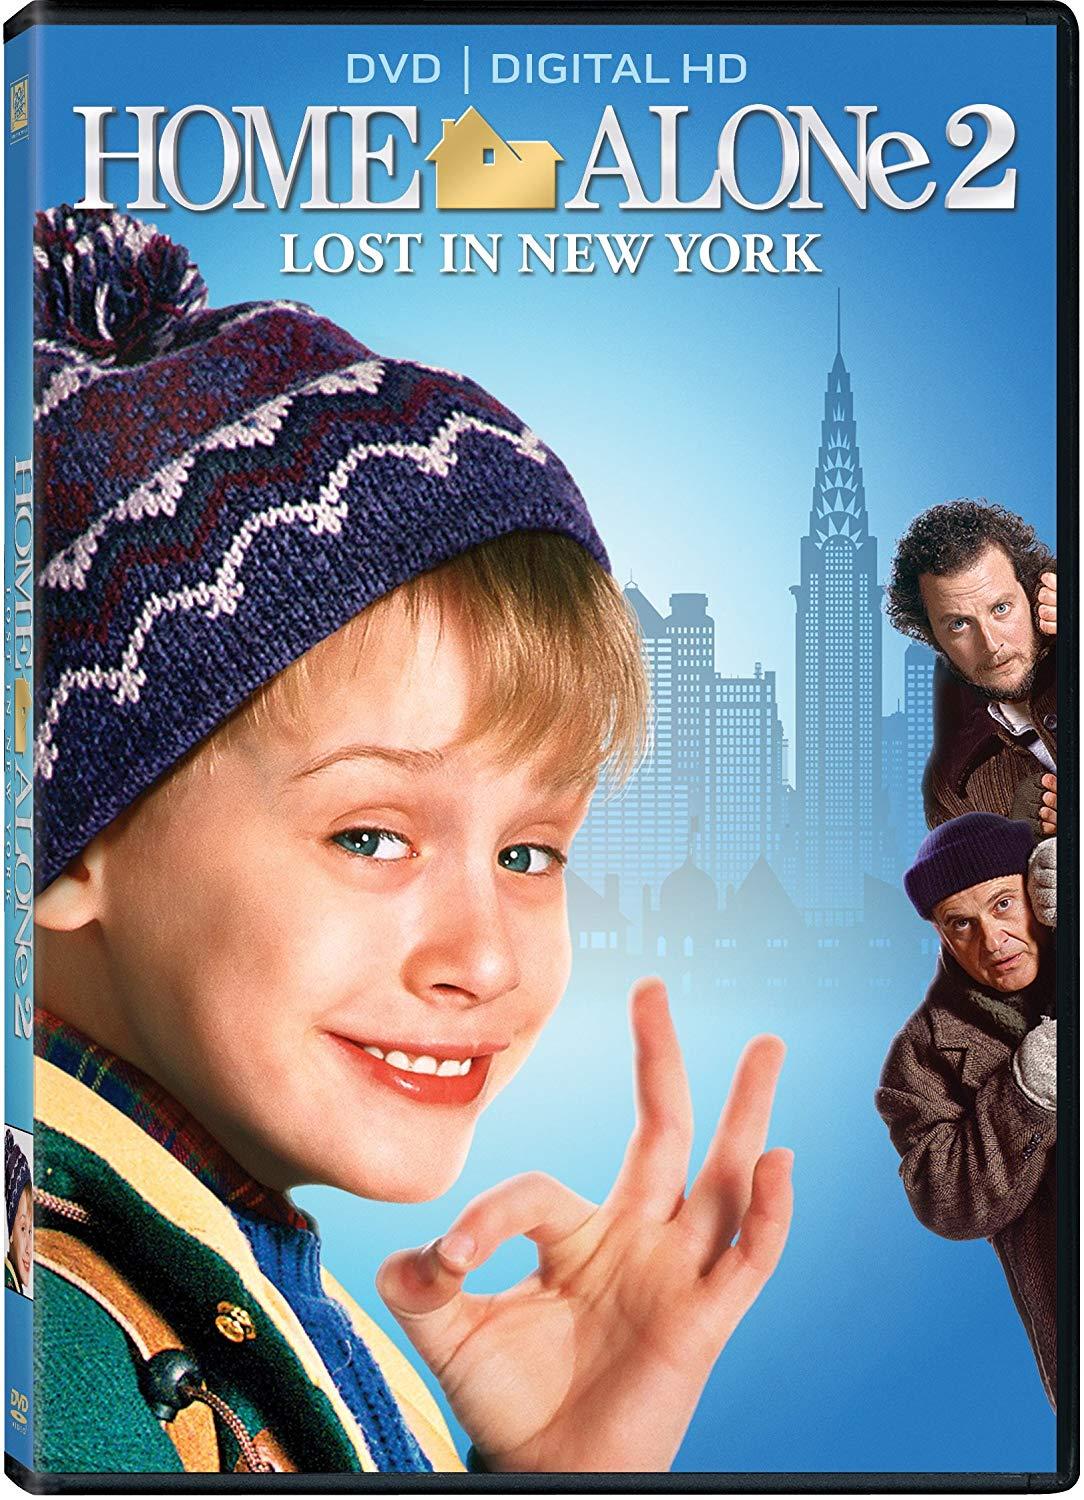 Home Alone [Movie] - Home Alone 2: Lost in New York